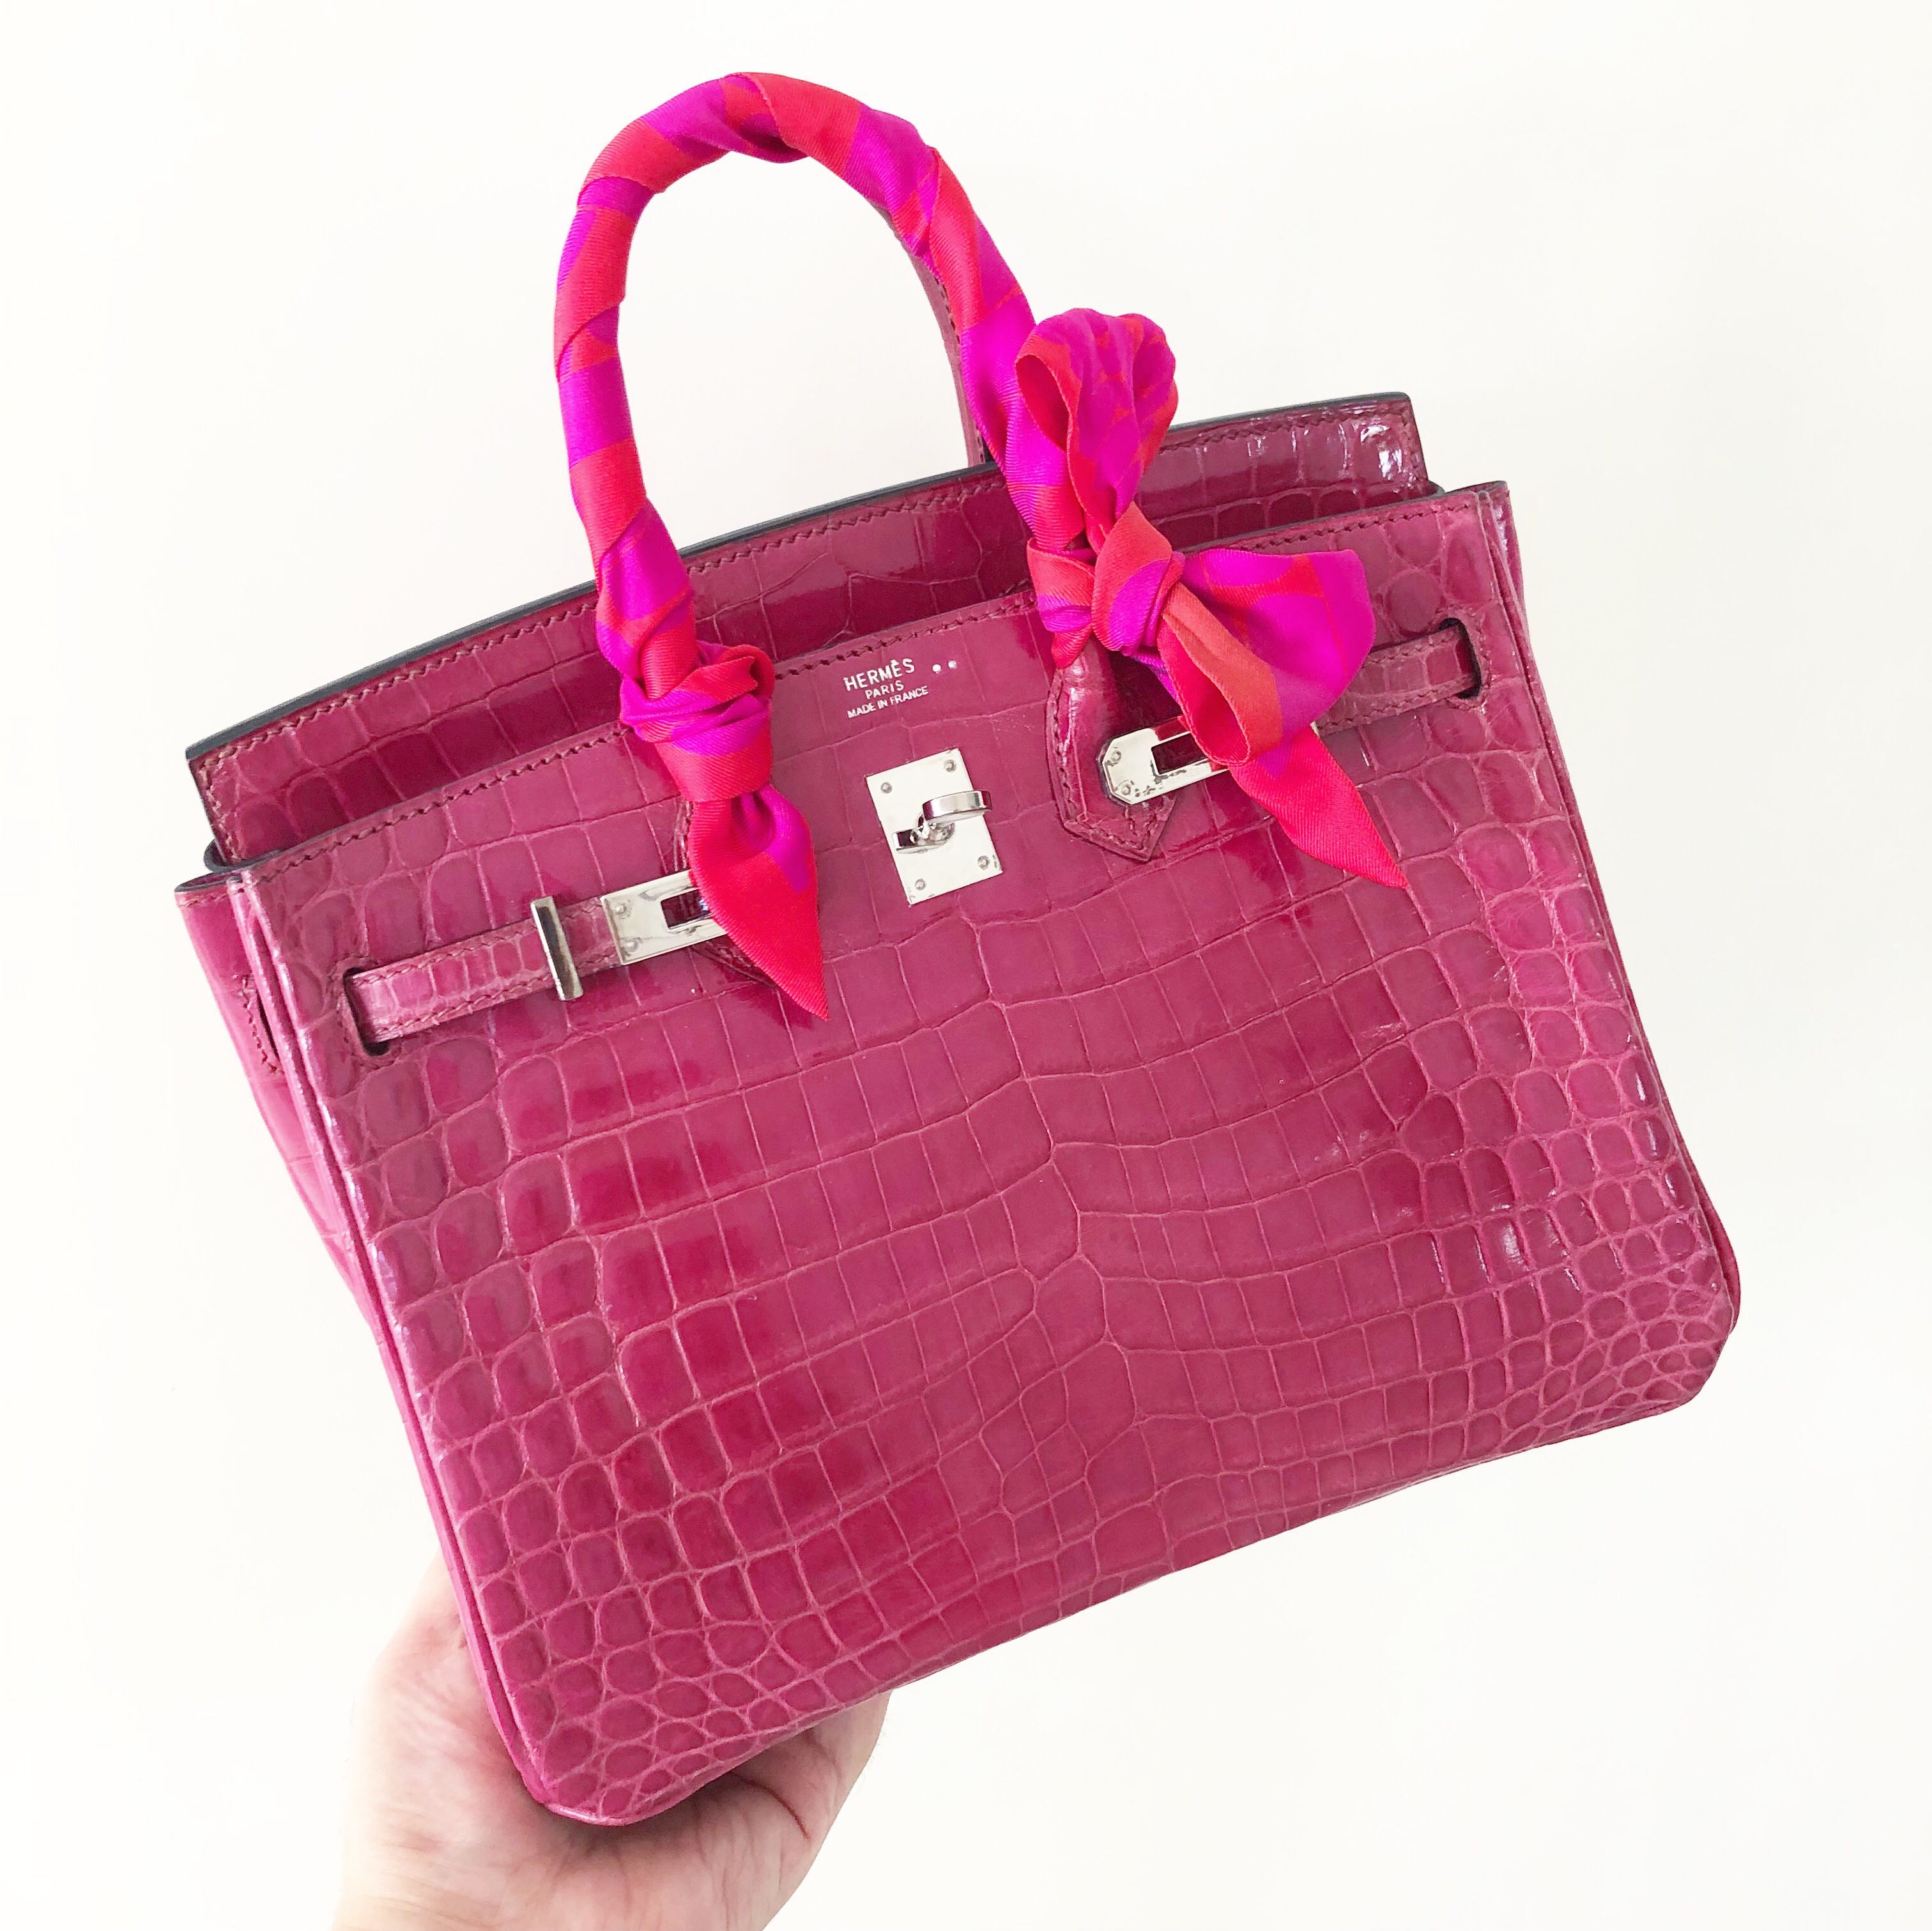 46ed34422099 ... wholesale authentic preloved hermes birkin 25 fuchsia shiny niloticus  phw i stamp luxury bags wallets handbags